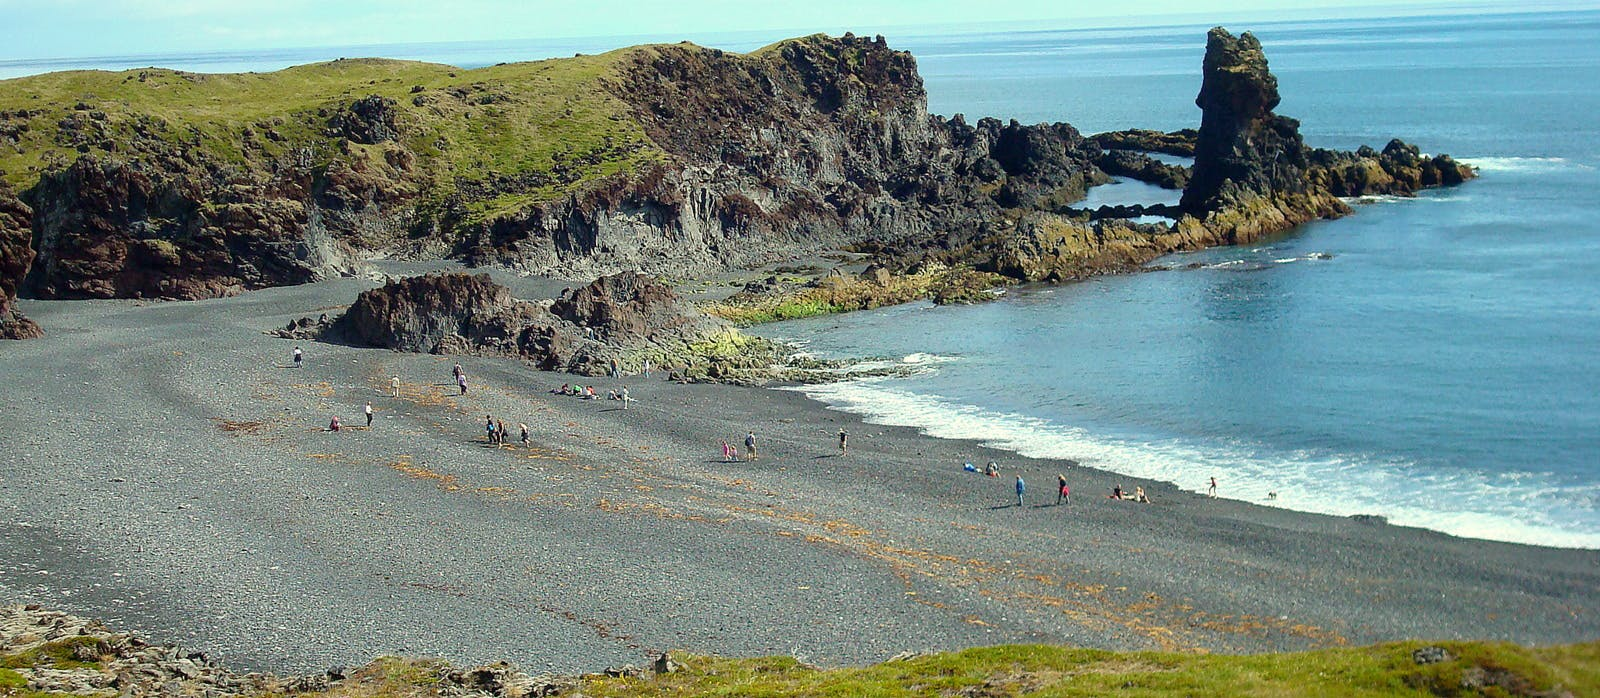 The Magical Snæfellsnes Peninsula in West-Iceland - Part II